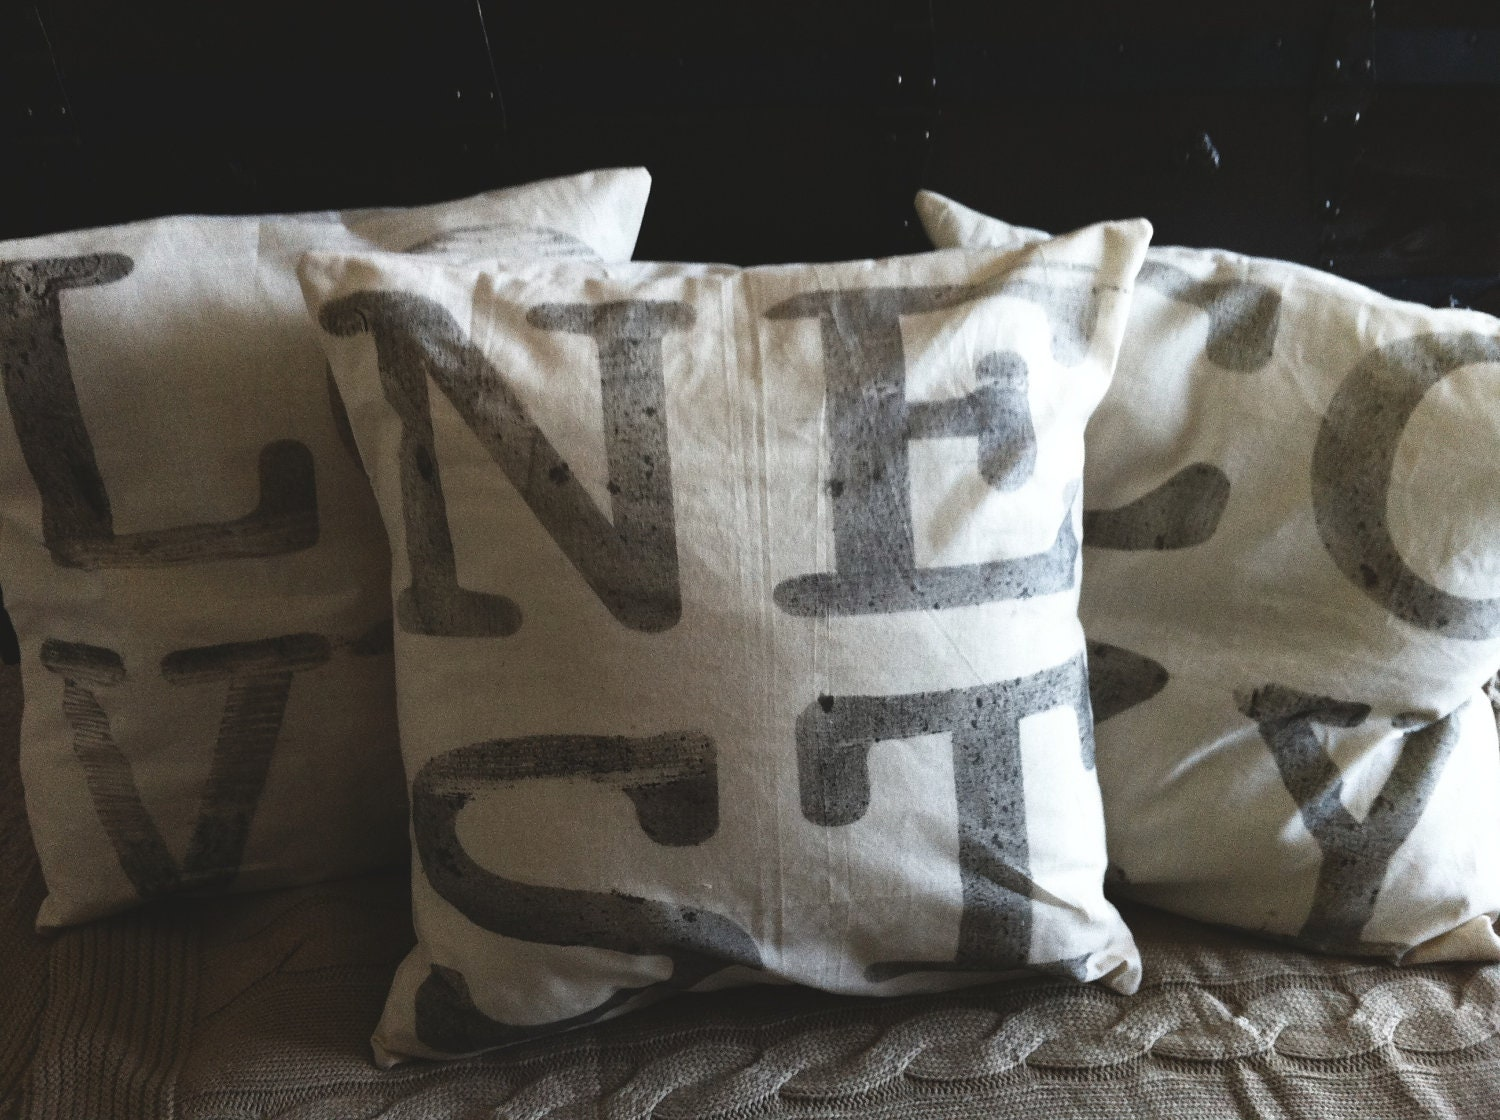 COZY 4 Letter Word 16 x 16 Pillow Cover, home decor, family gift, new family, house warming, love, cozy